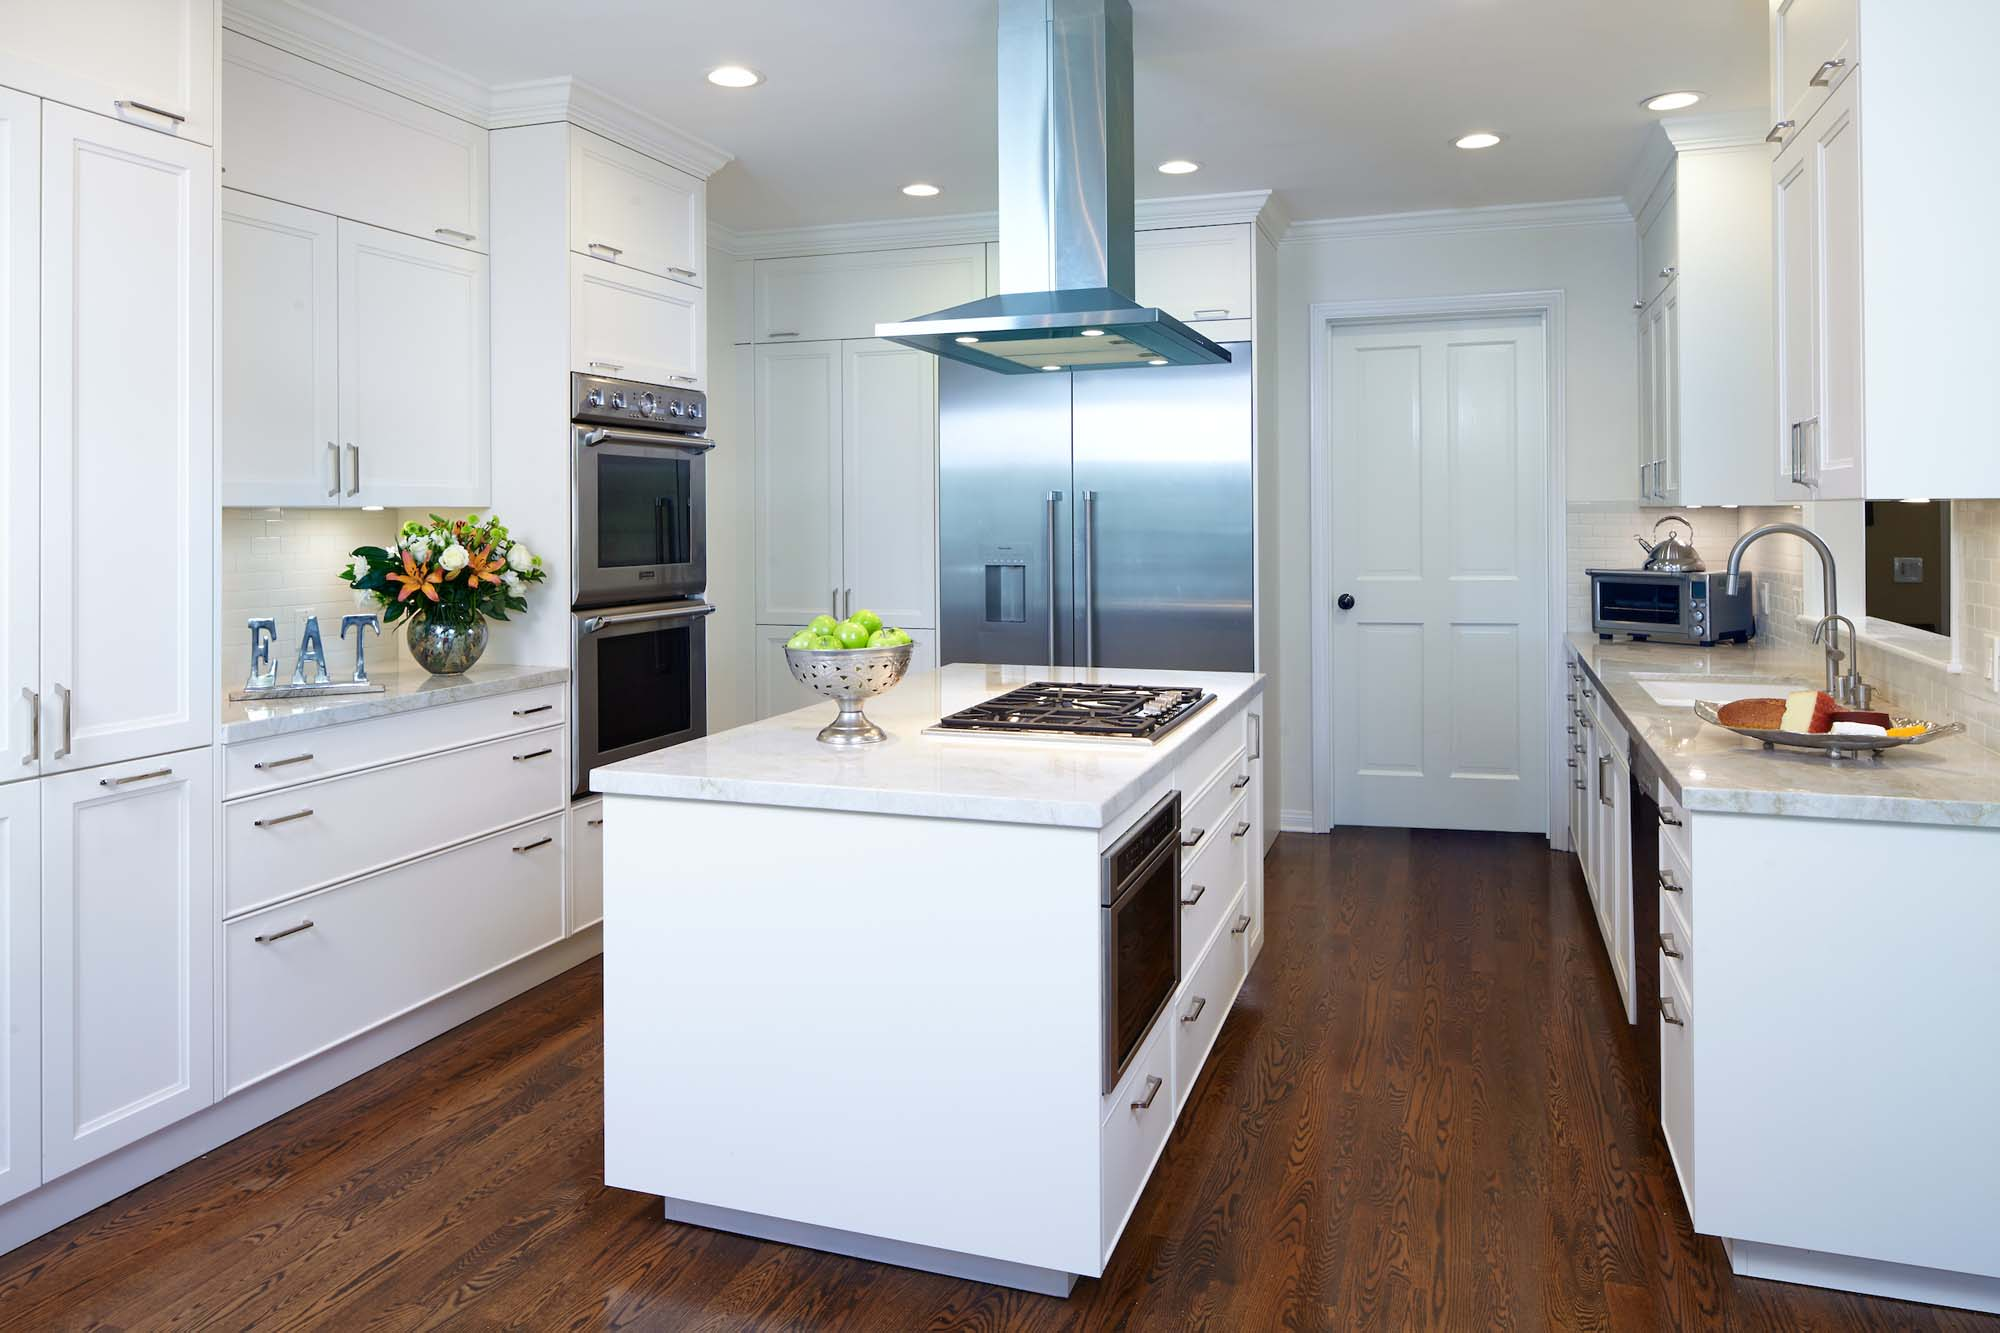 La Cañada-Flintridge Kitchen Makeover - After